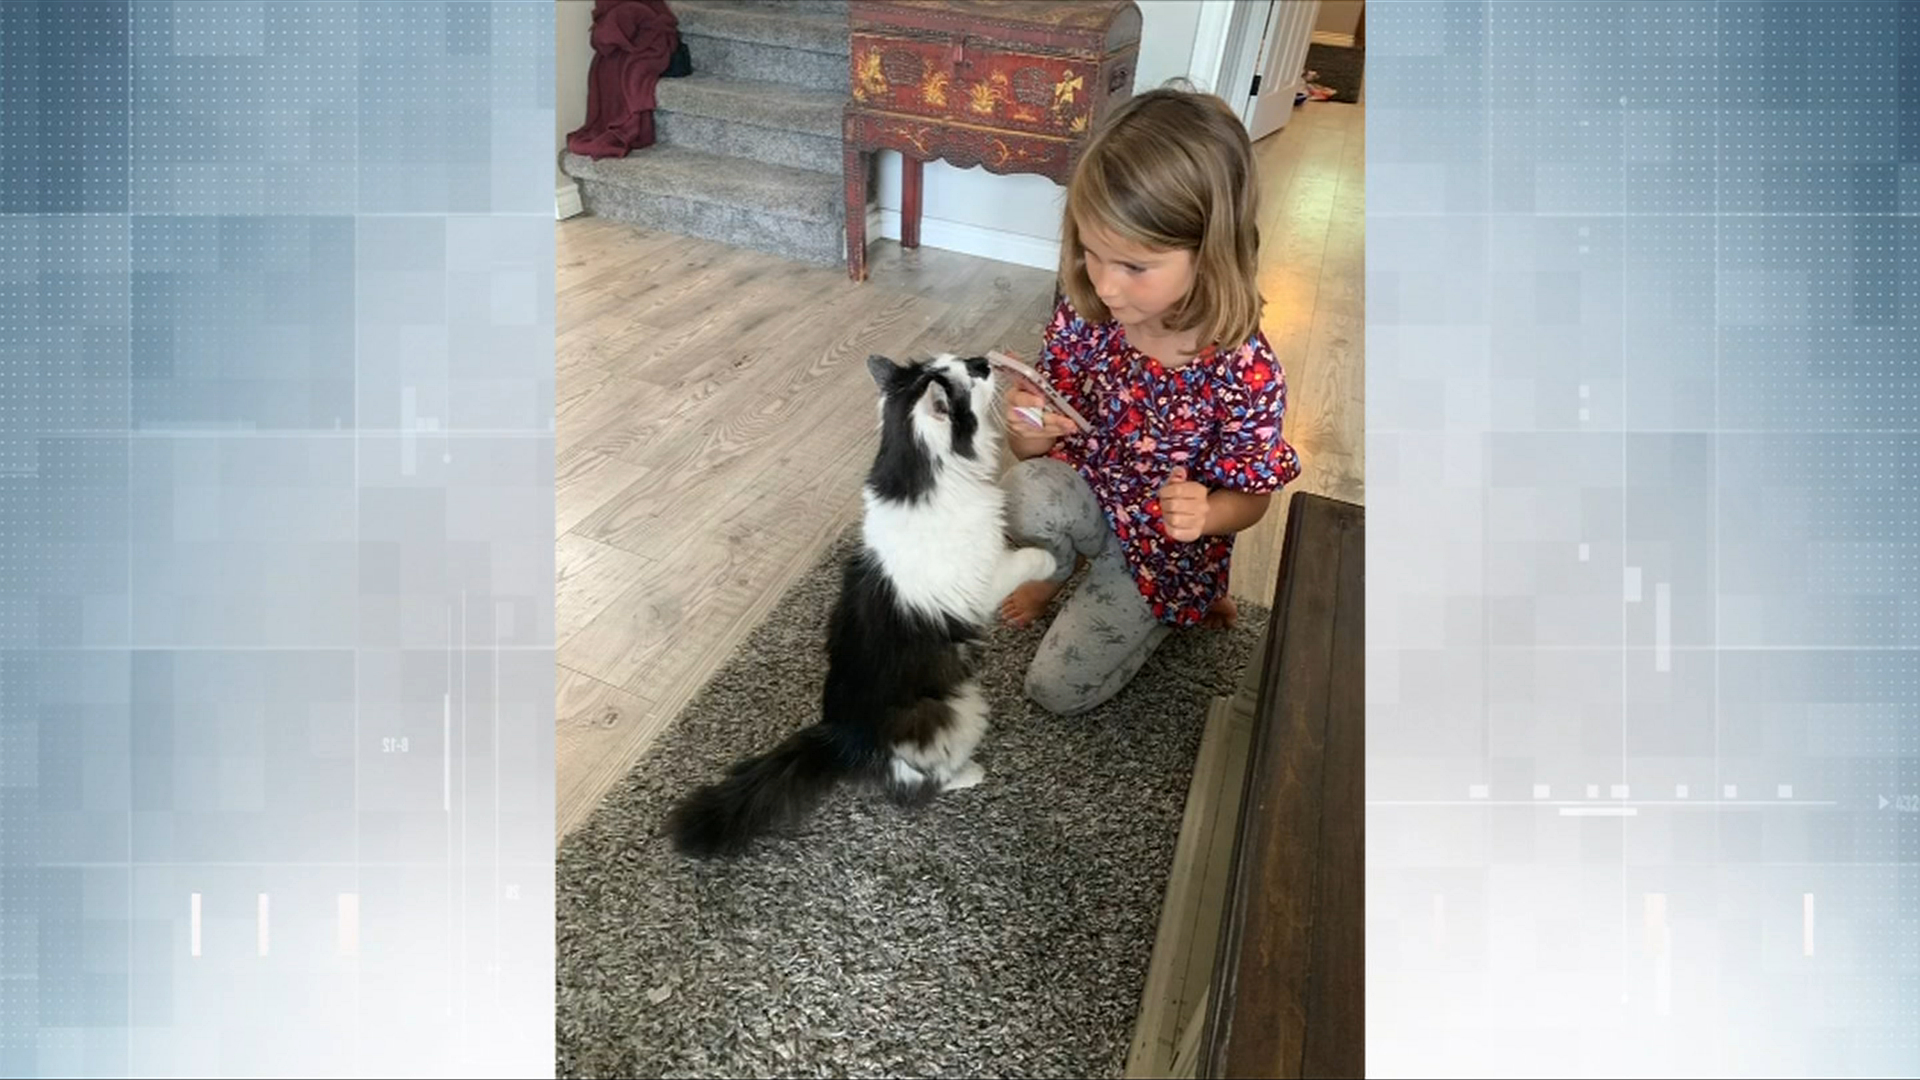 'It was fate:' Lost cat returns home to Colwood after going missing for more than a year